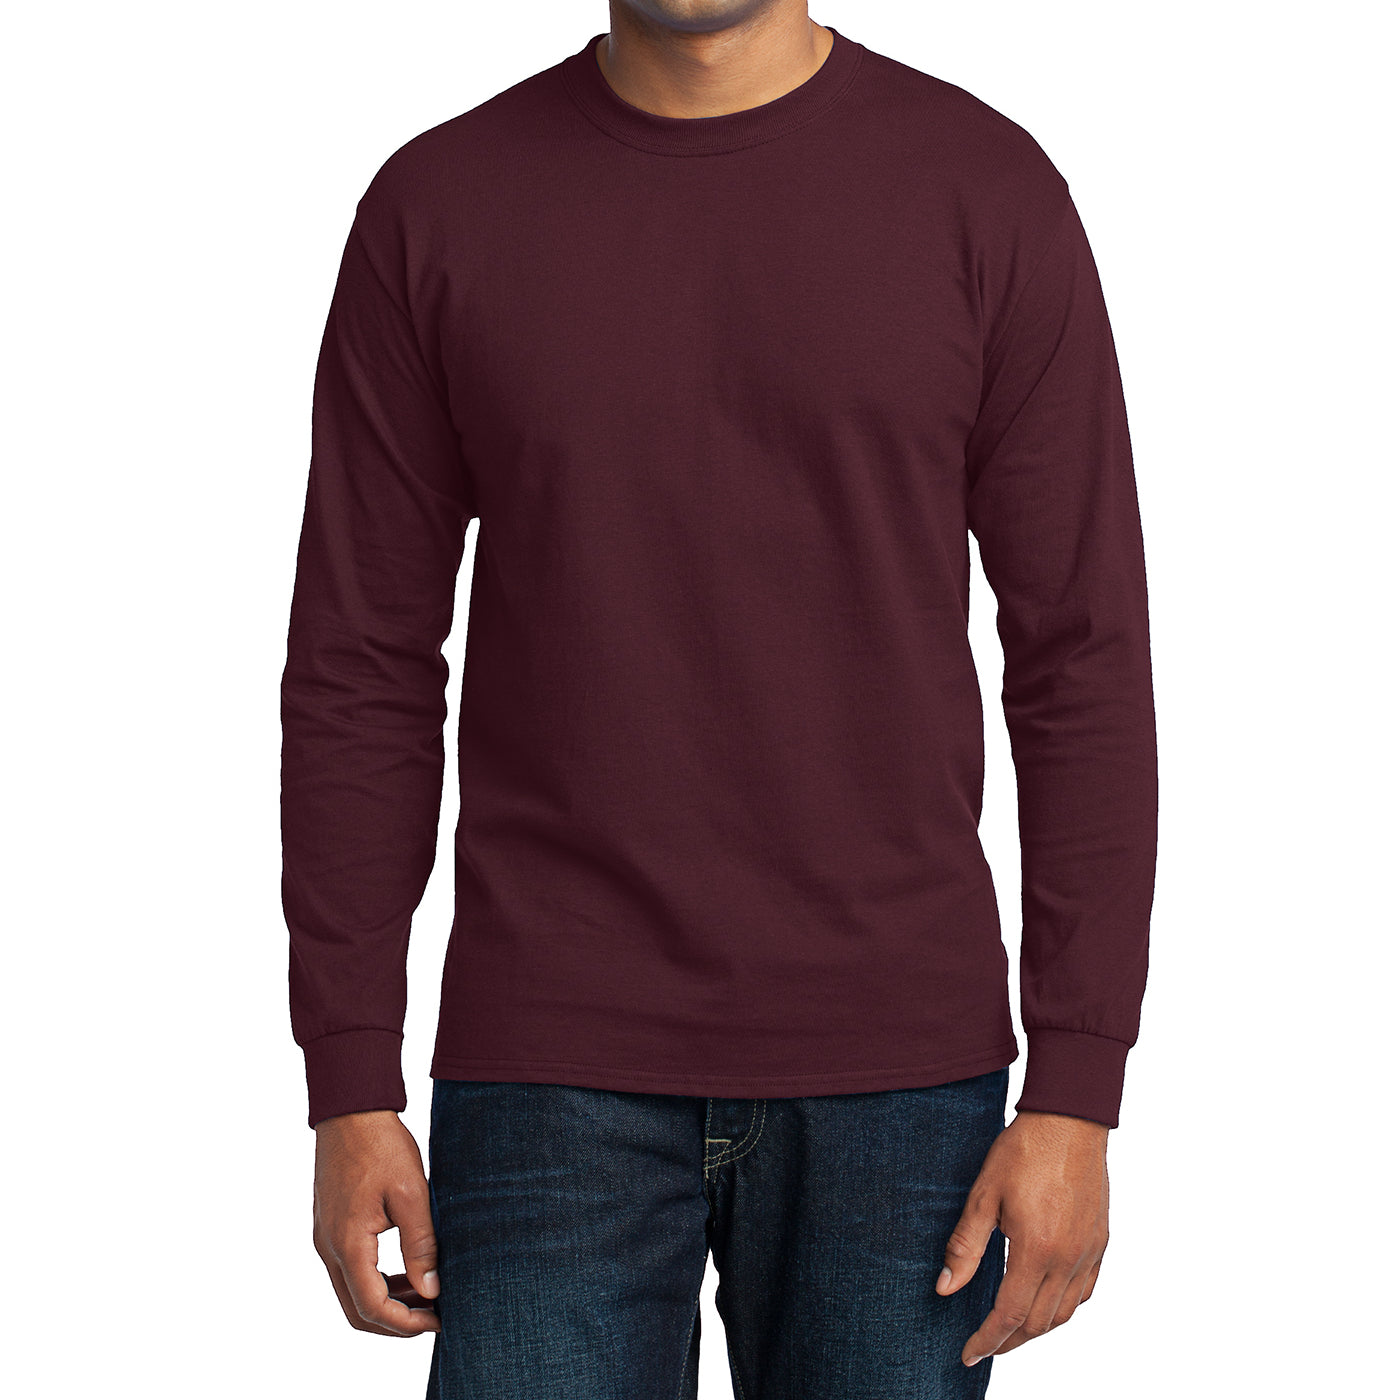 Men's Long Sleeve Core Blend Tee - Athletic Maroon – Front